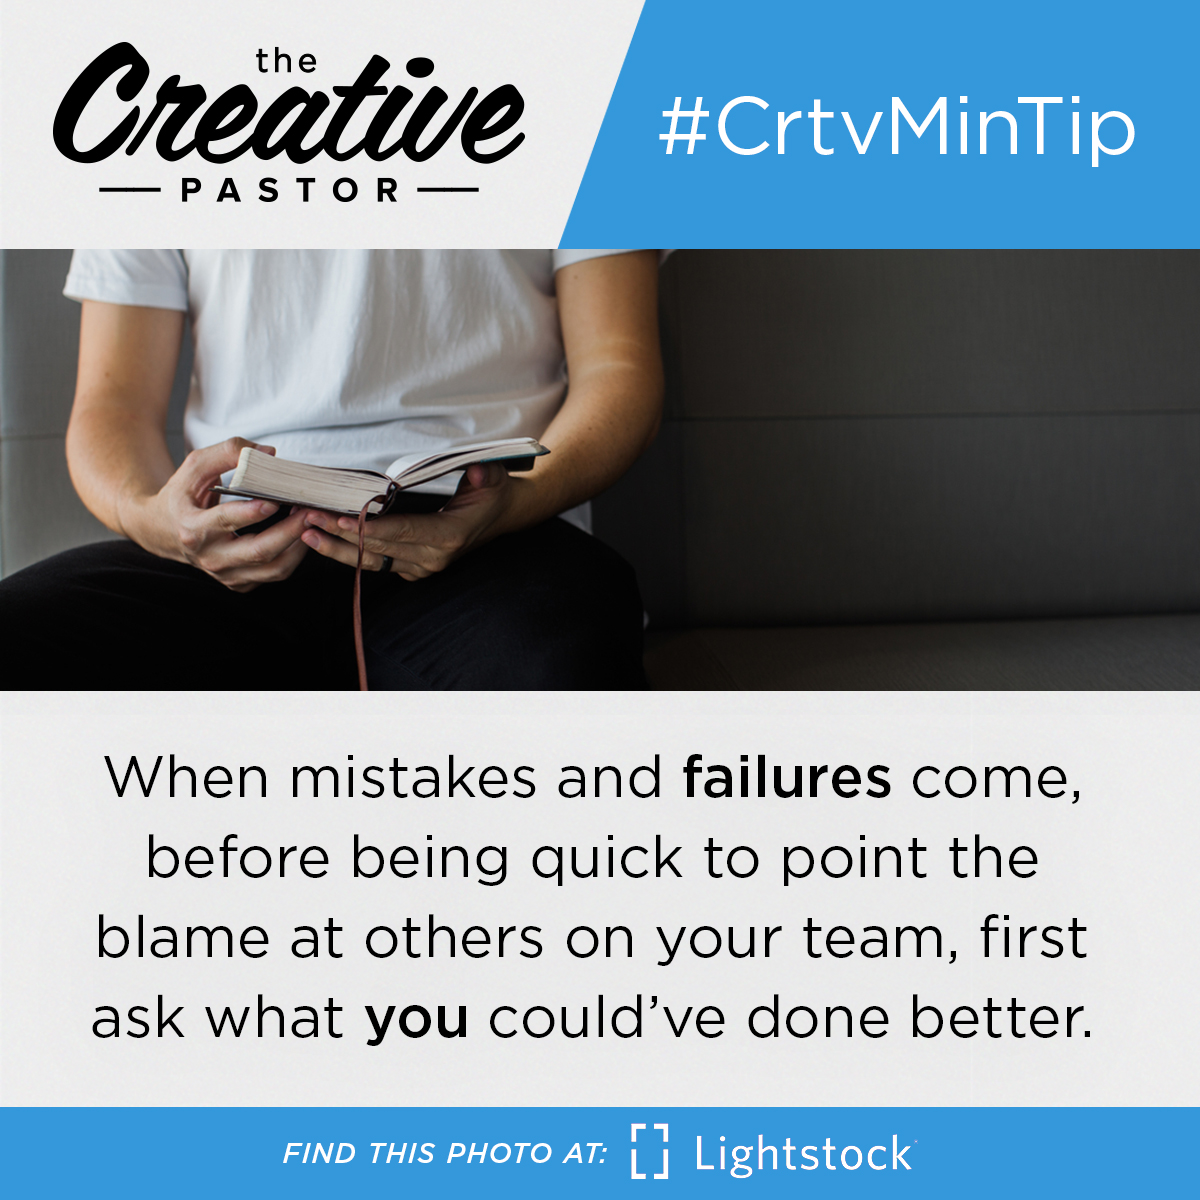 #CrtvMinTip: When mistakes and failures come, before being quick to point the blame at others on your team, first ask what you could've done better.